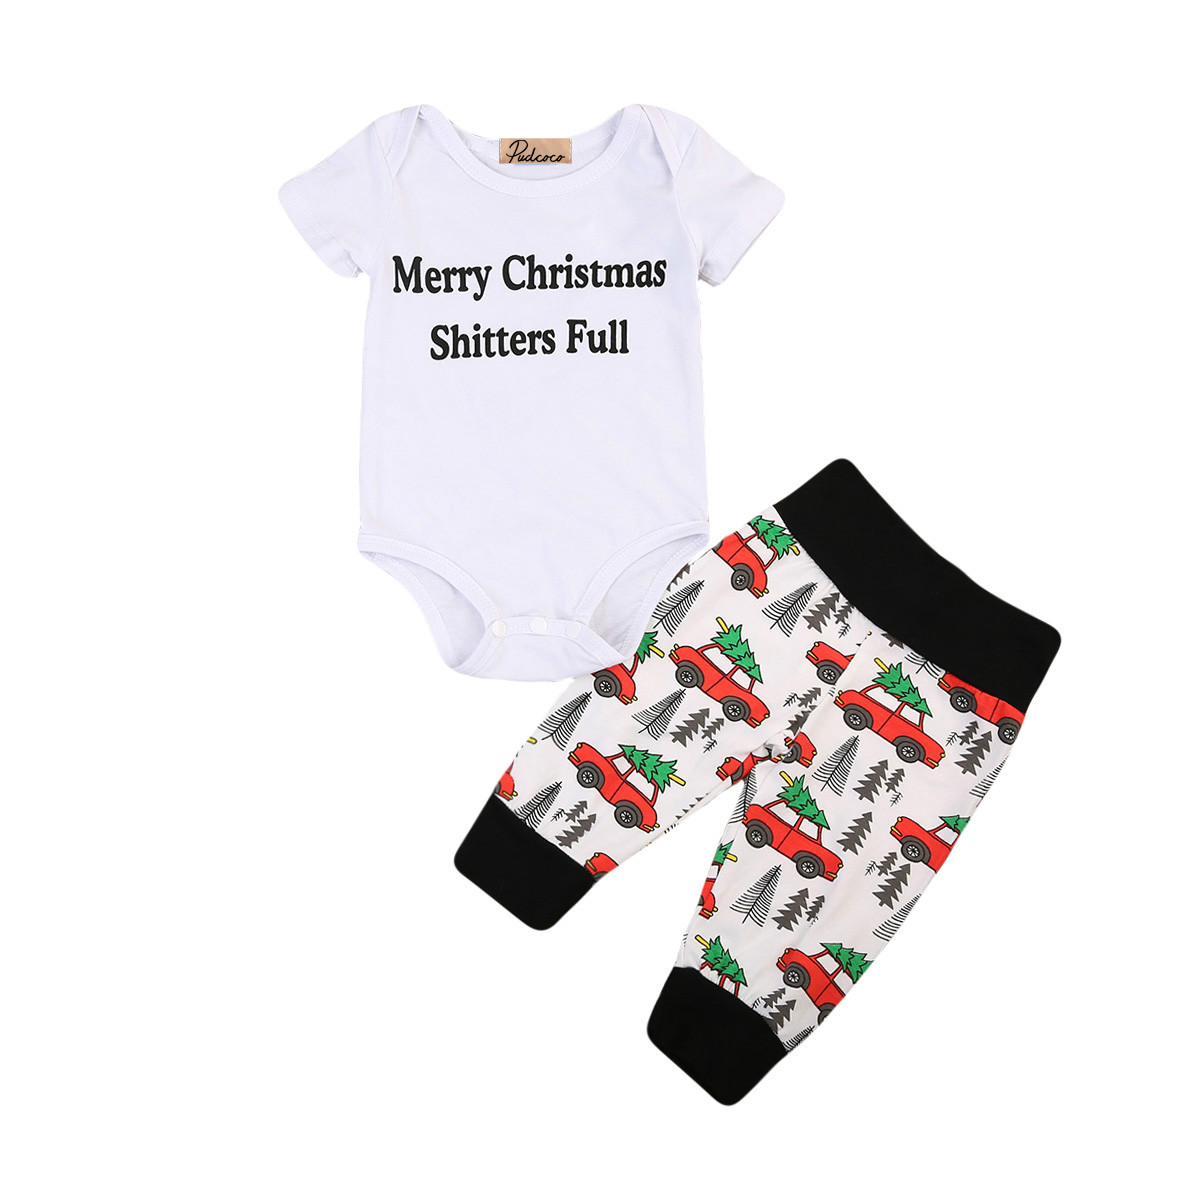 2PCS Baby Christmas Outfits Clothes Newborn Baby Boys Girls Cotton Rompers Car Print Pants Xmas Outfits Children Clothing Set 3pcs baby boy clothing set newborn baby girls clothes i ll eat you up i love you so rompers pants hat toddle outfits